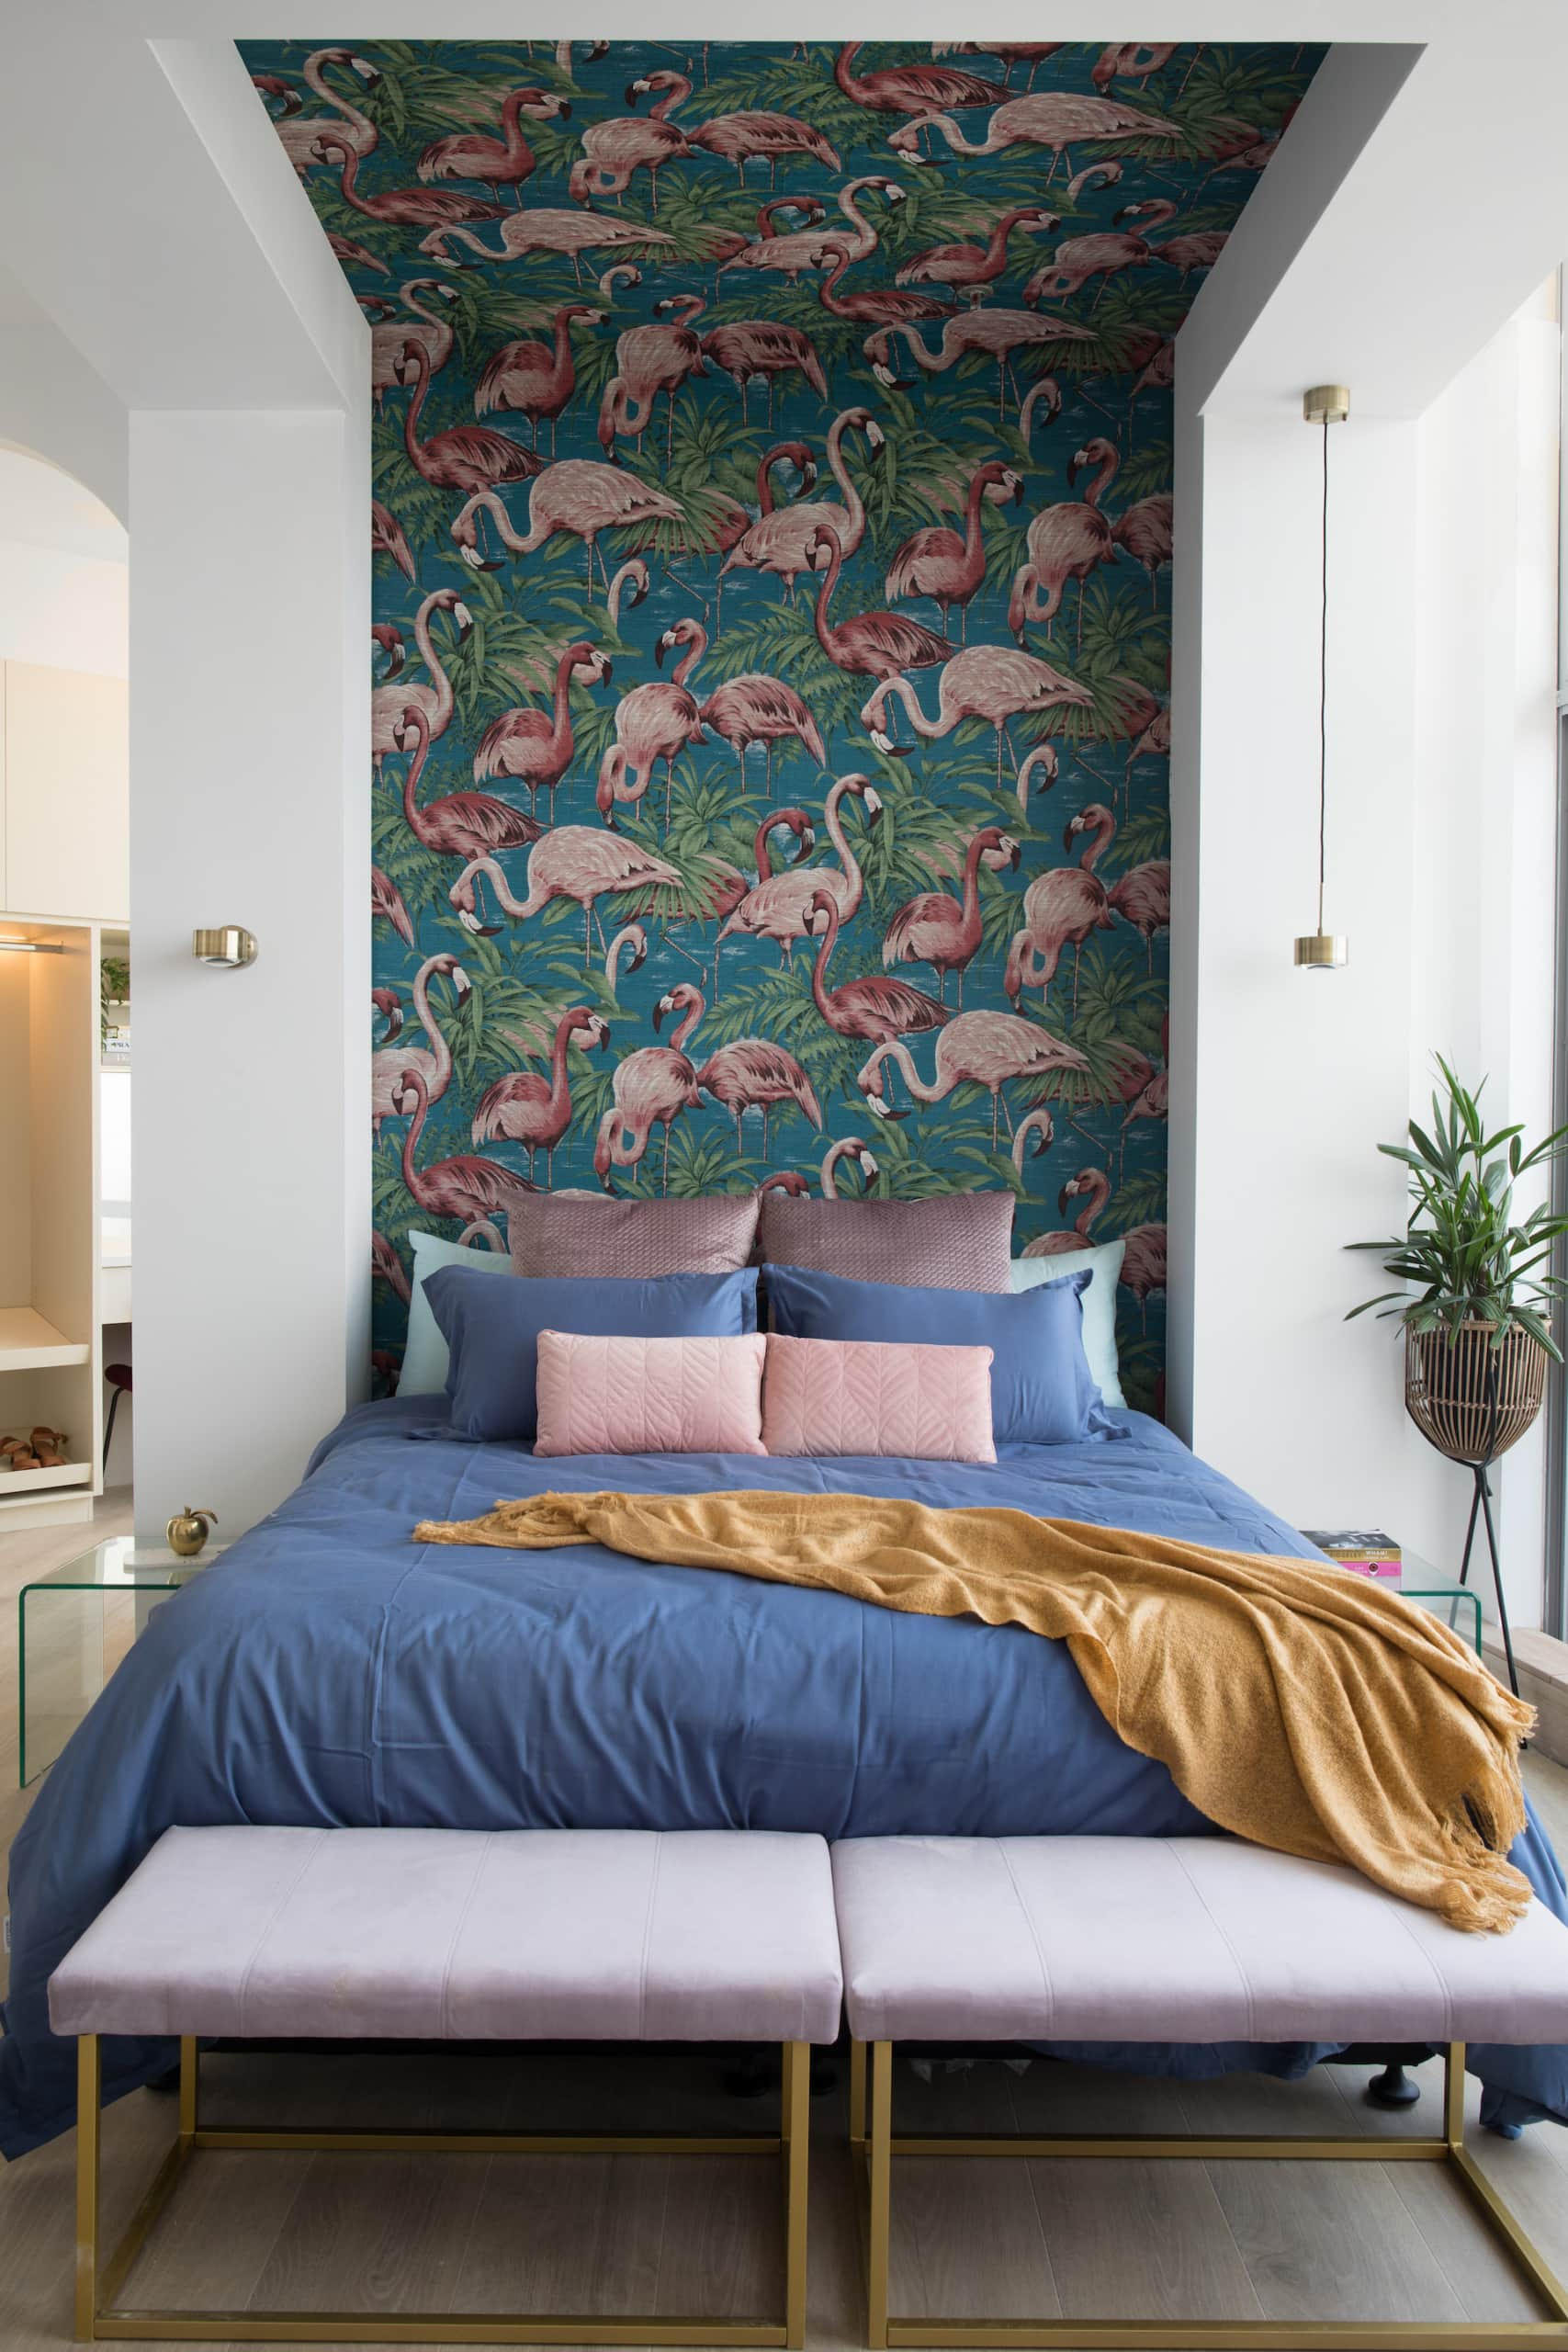 house rules 2020 penthouse reveal bedroom with flamingo wallpaper